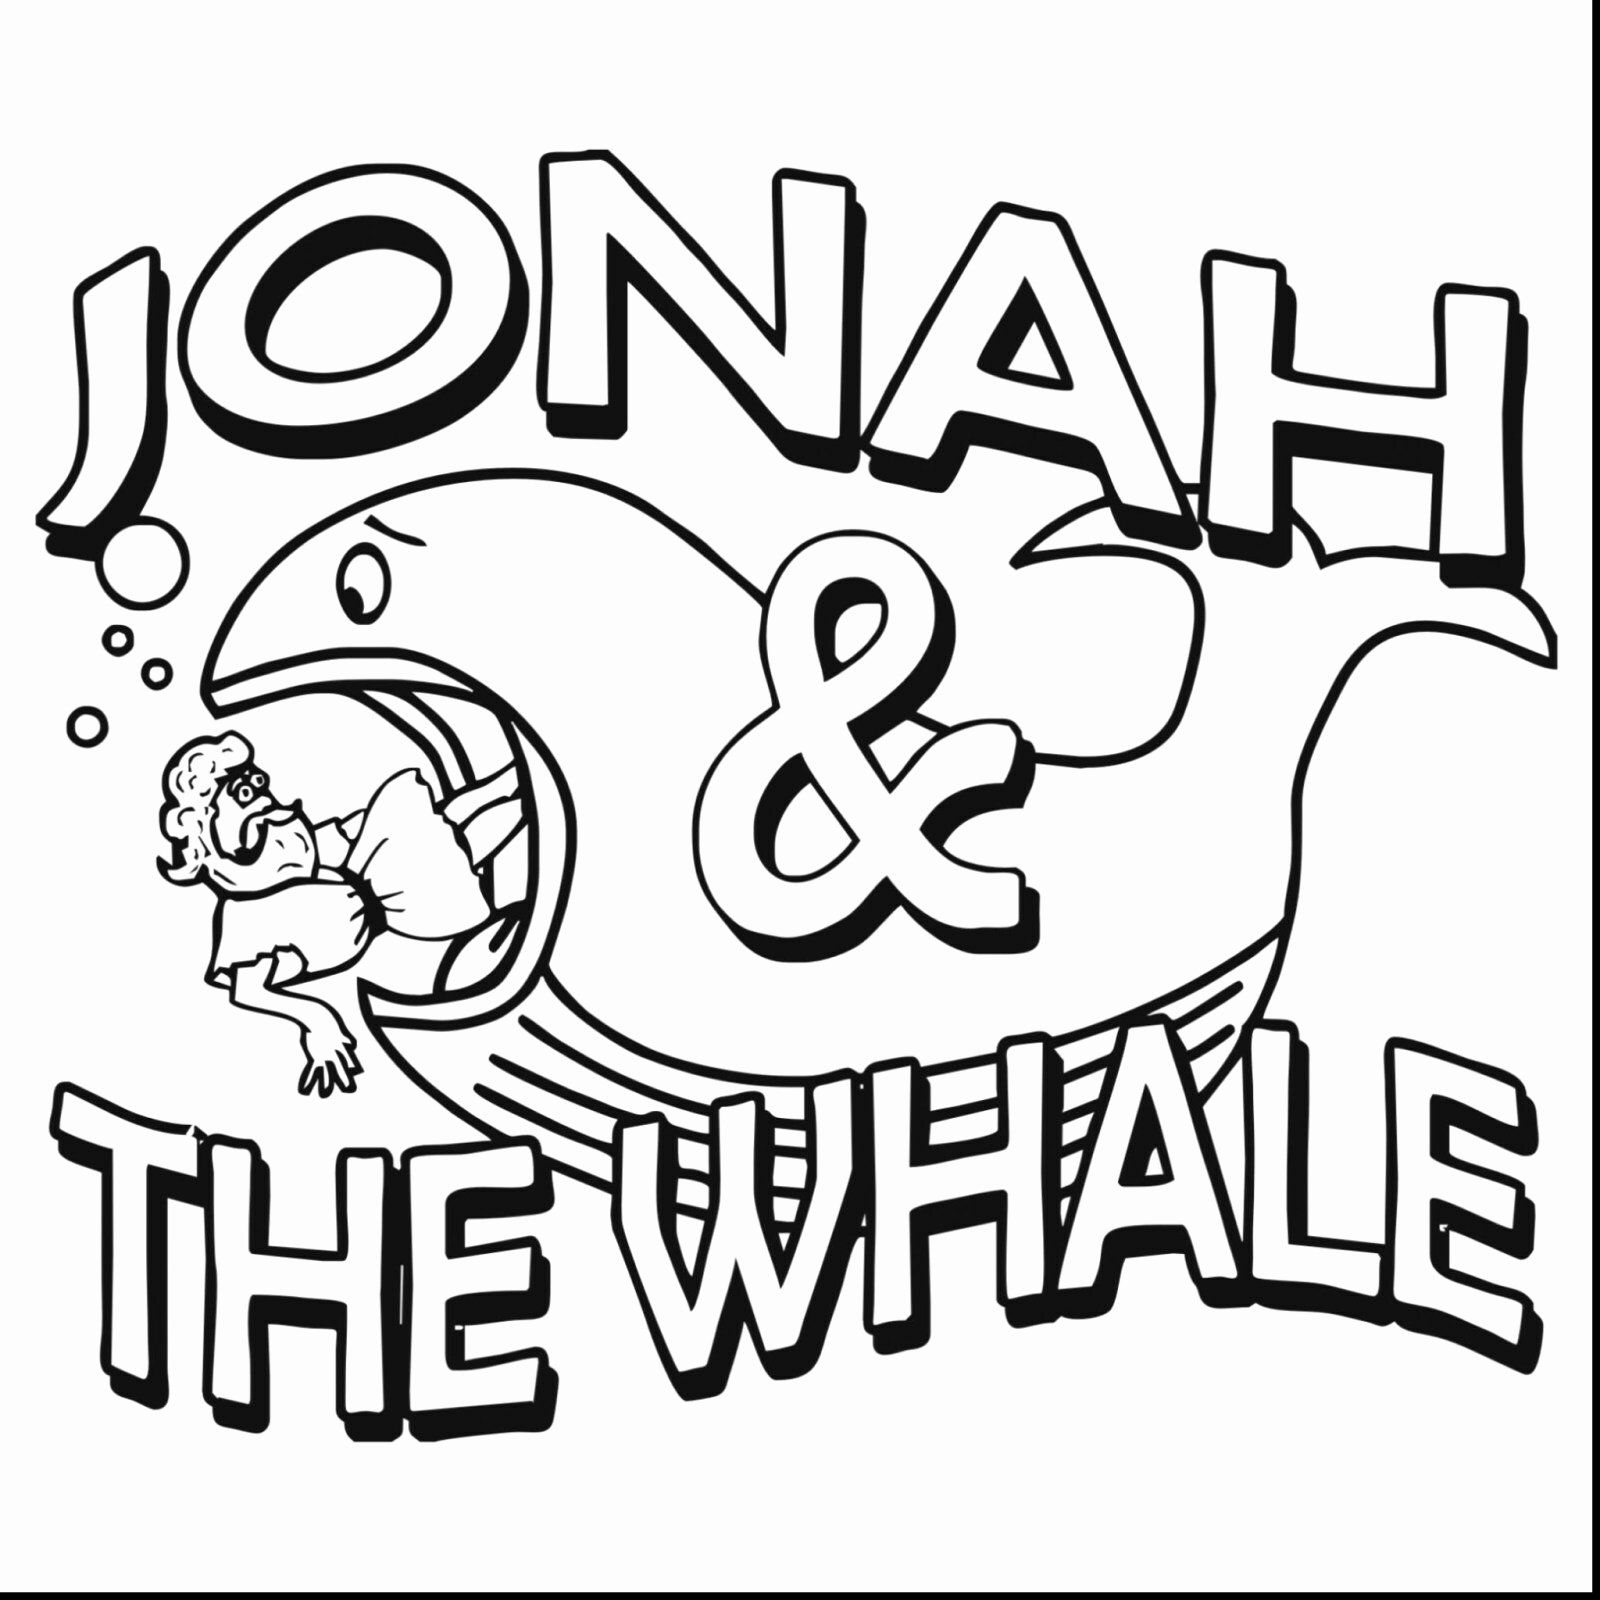 Good Friday Coloring Page Inspirational Exquisite Jonah And The Whale Coloring Page Waggapoultryub